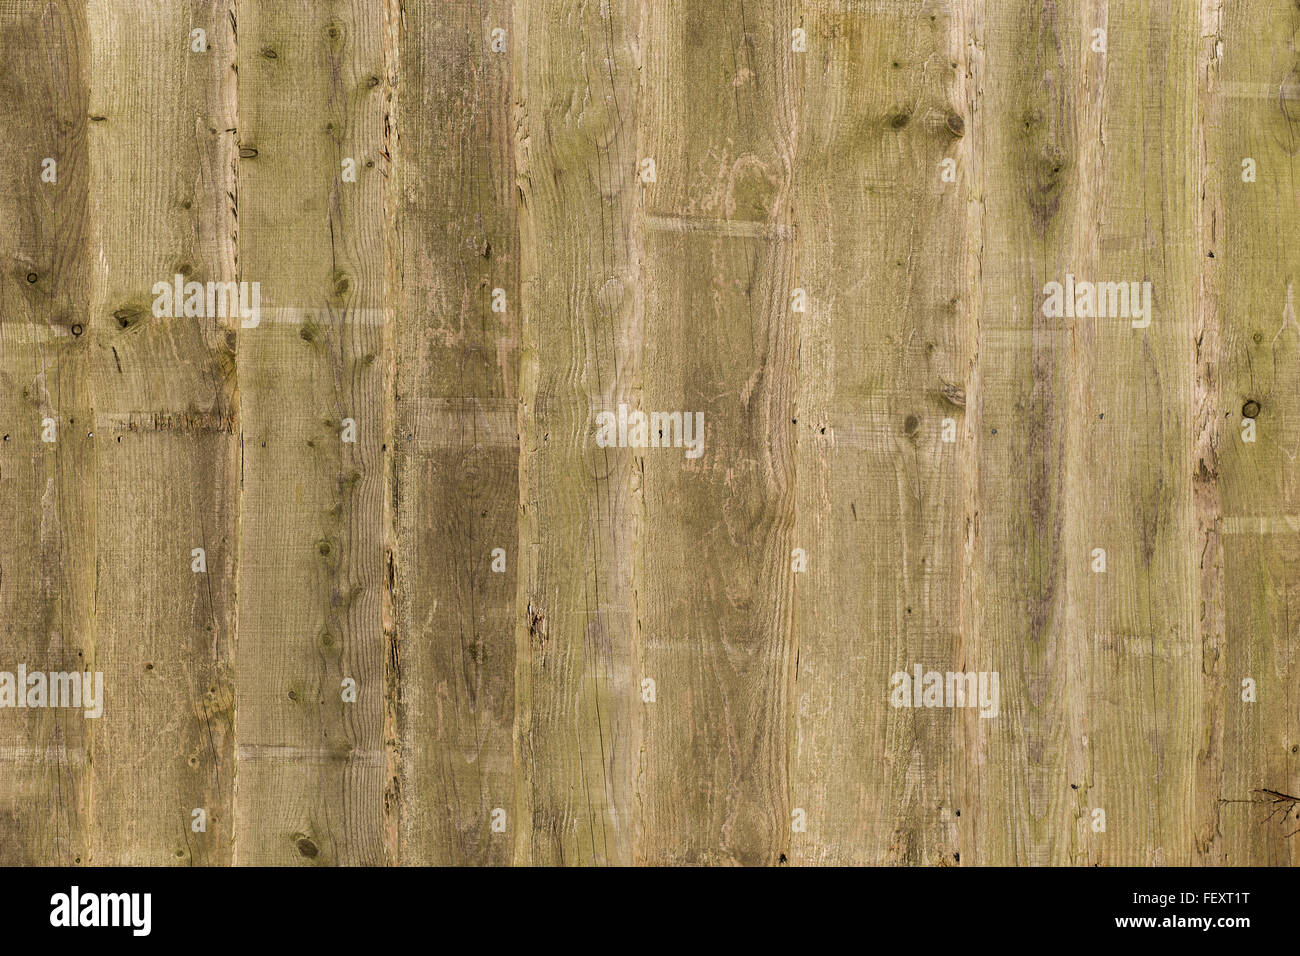 Wooden fence panels stock photos wooden fence panels stock weathered wooden fence panels background texture boards wall stock image baanklon Images